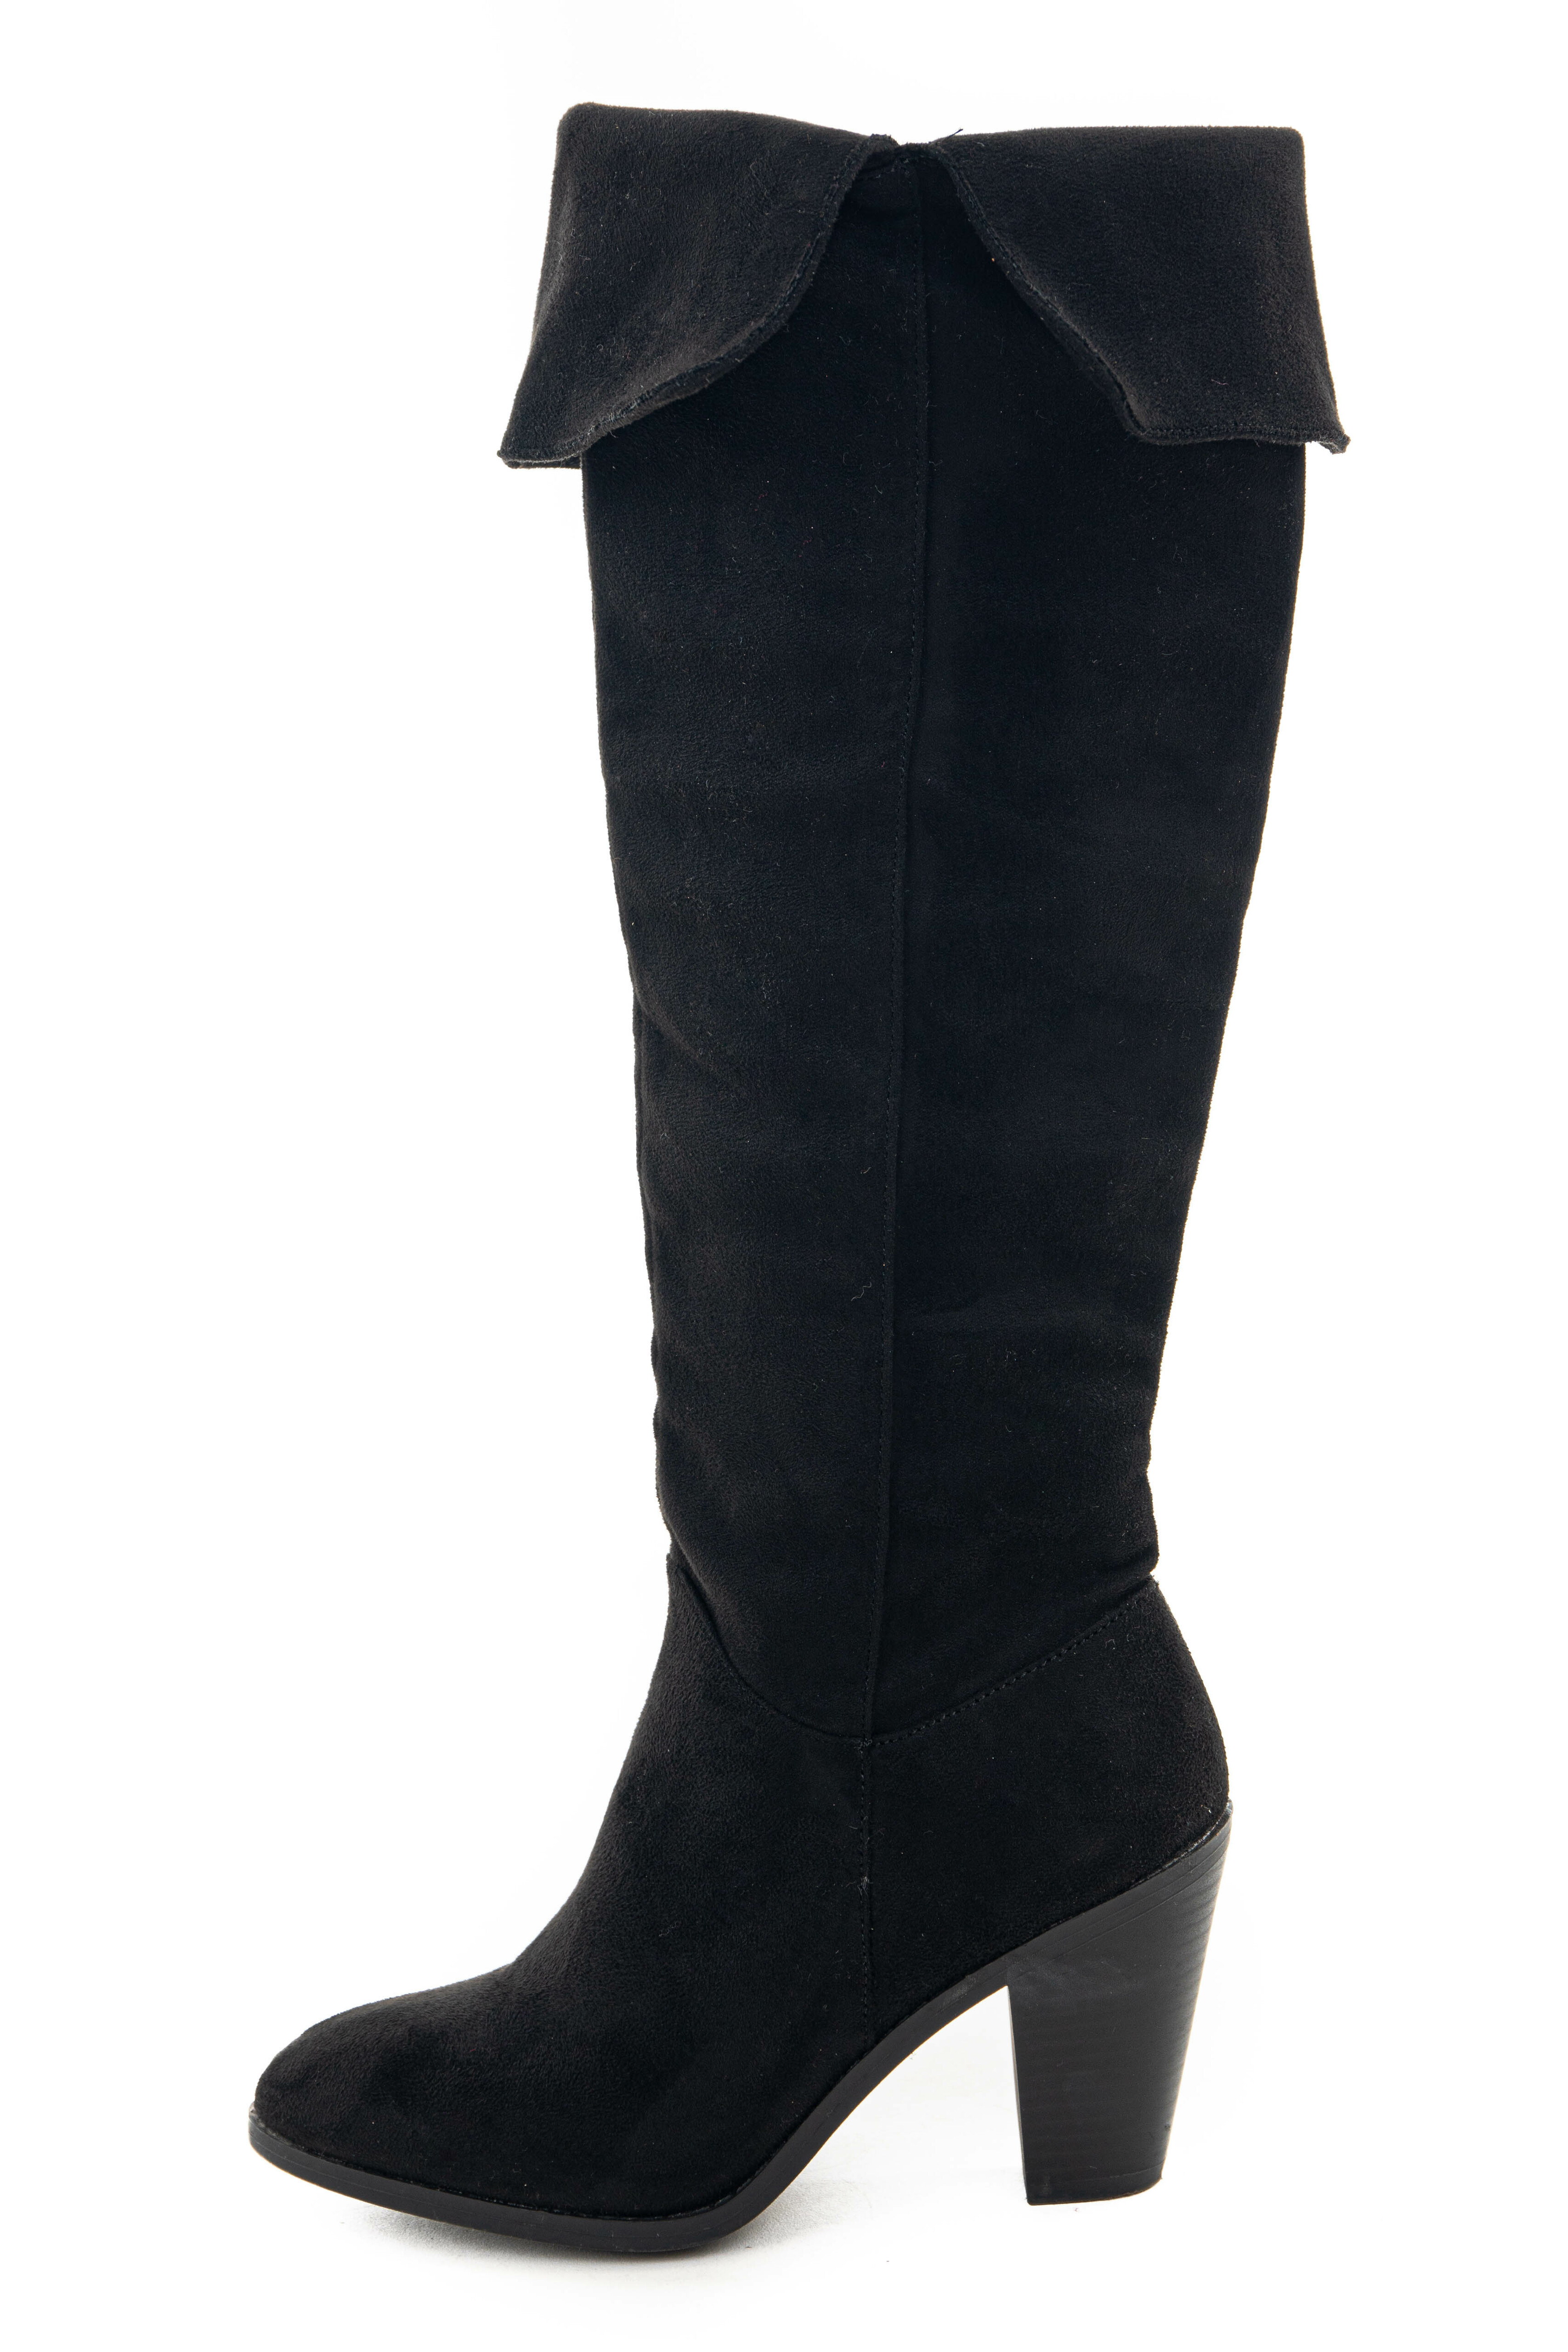 Black Faux Suede Folded Slouchy Heeled Boots